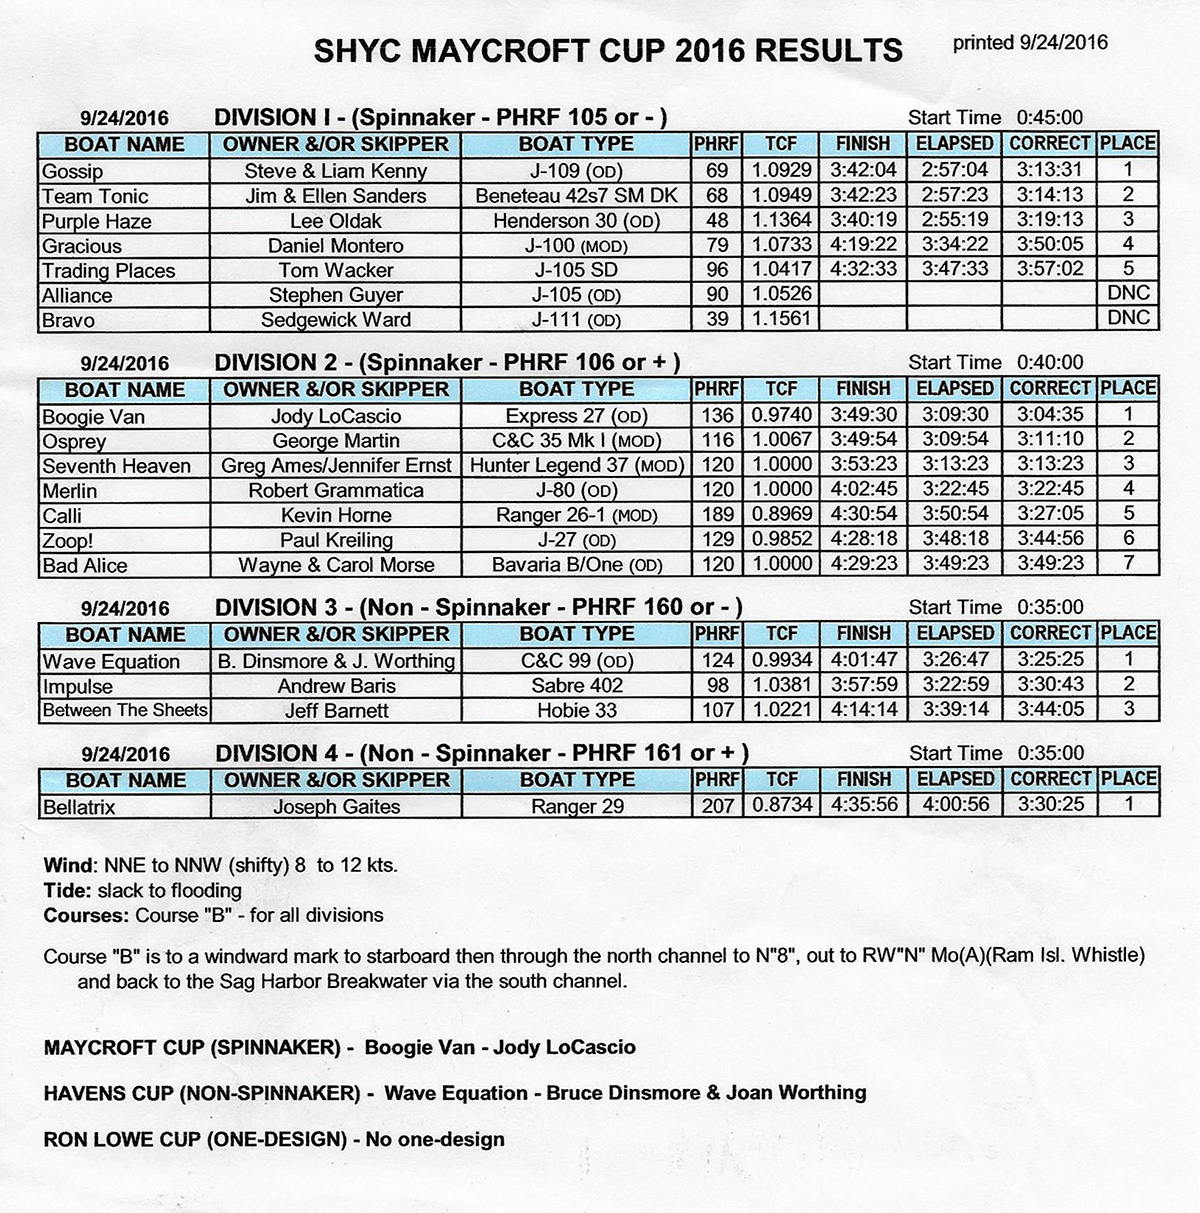 Maycroft Cup 2016 Results